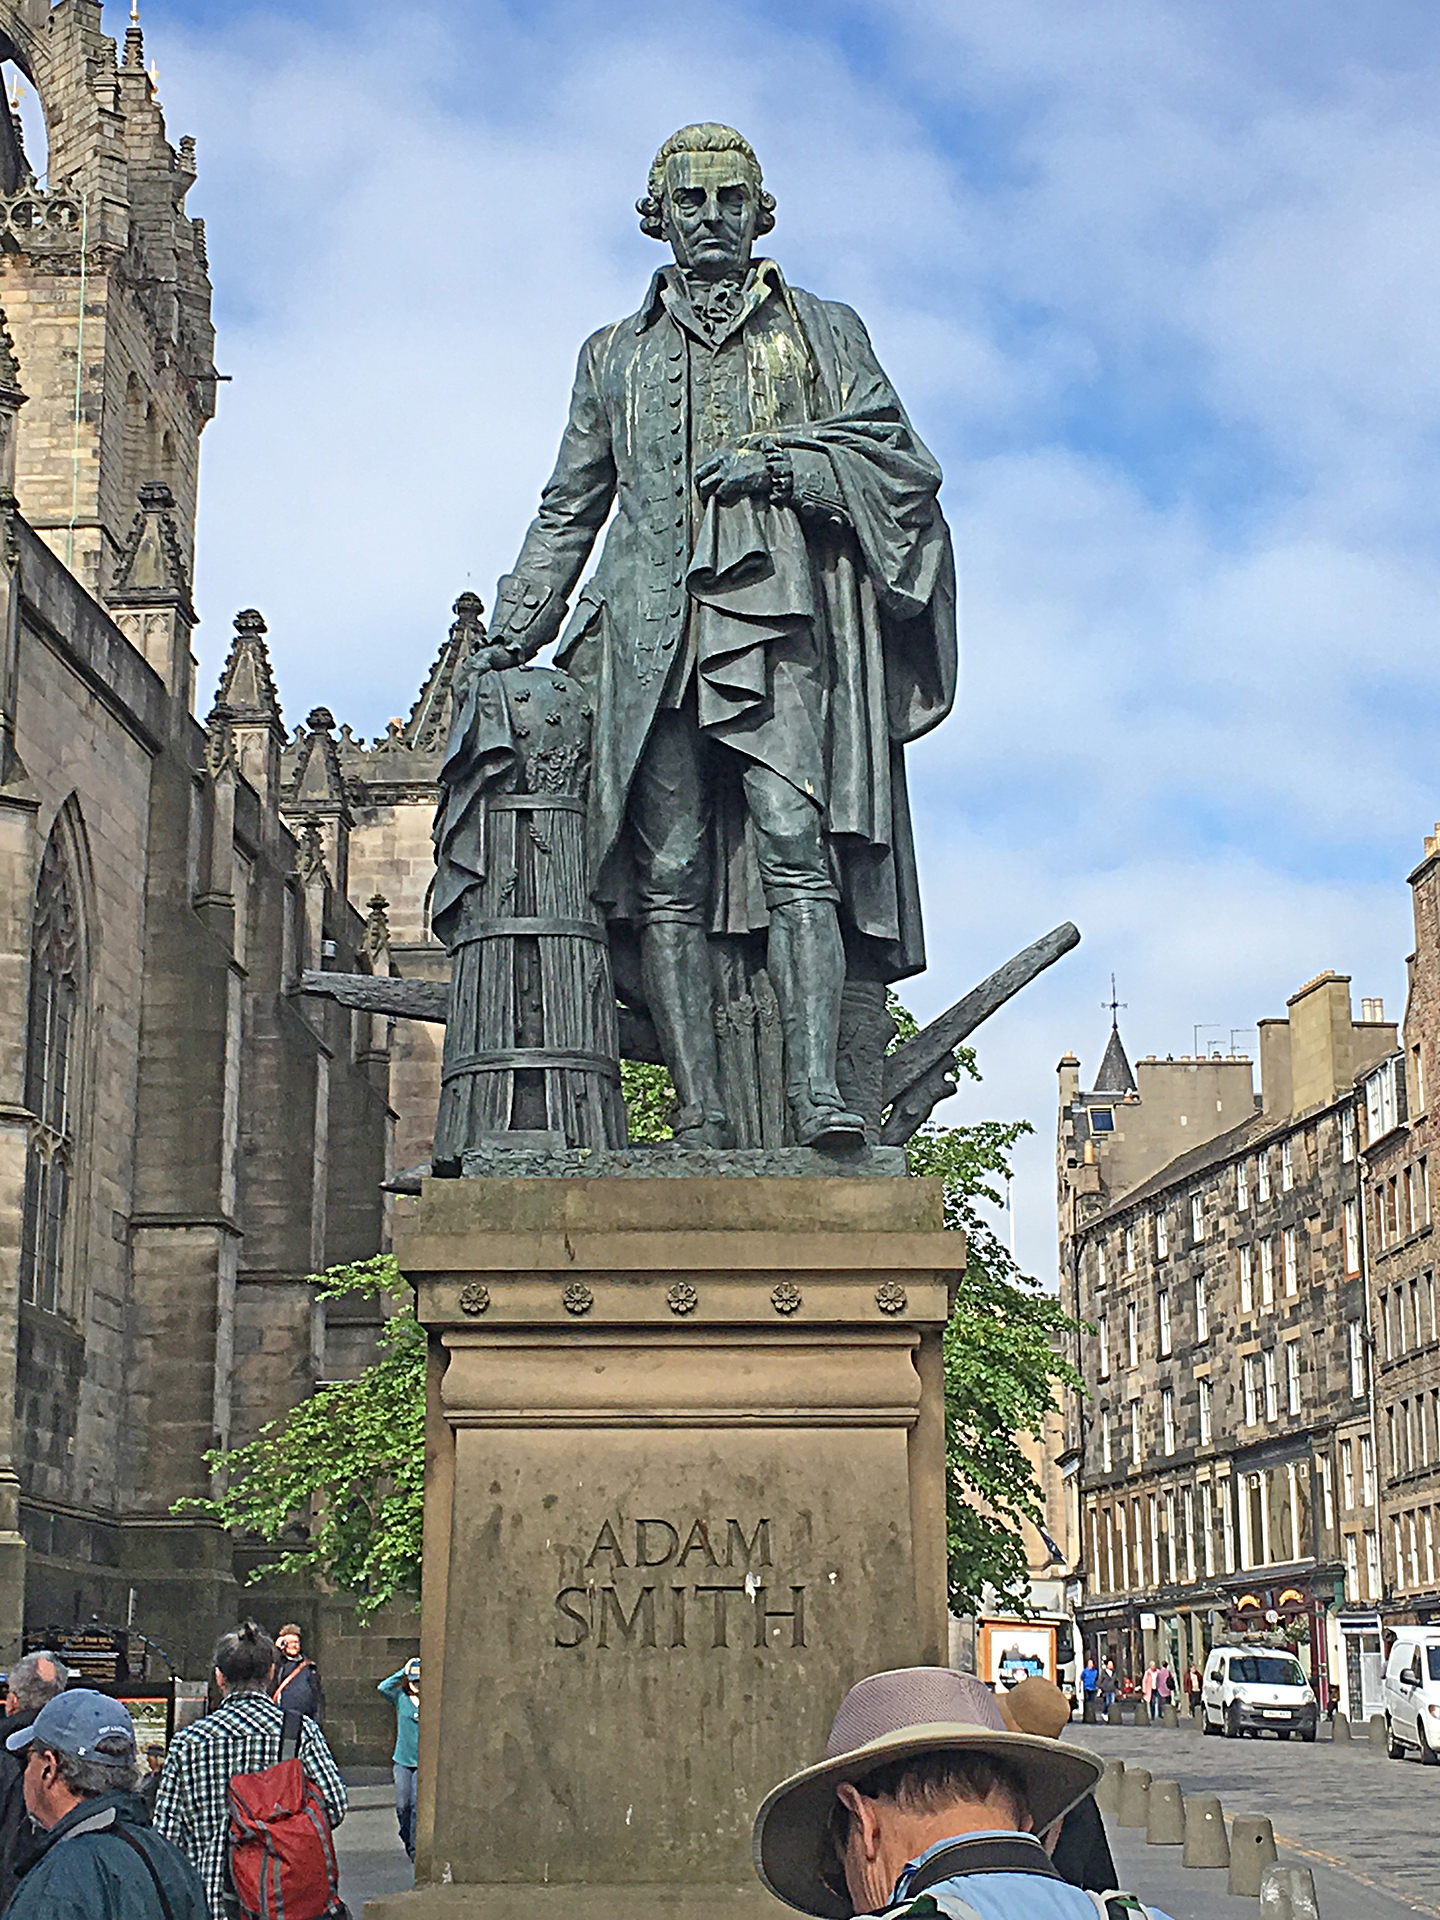 The Royal Mile is lined with statues of famous statesmen, ministers and educators.  One of my favorite statues is of Adam Smith who was educated at the Edinburgh University and one of the leaders of the Scottish Enlightenment.  Smith wrote the Wealth of Nations which is still known as one of the leading analyses of macro economics.